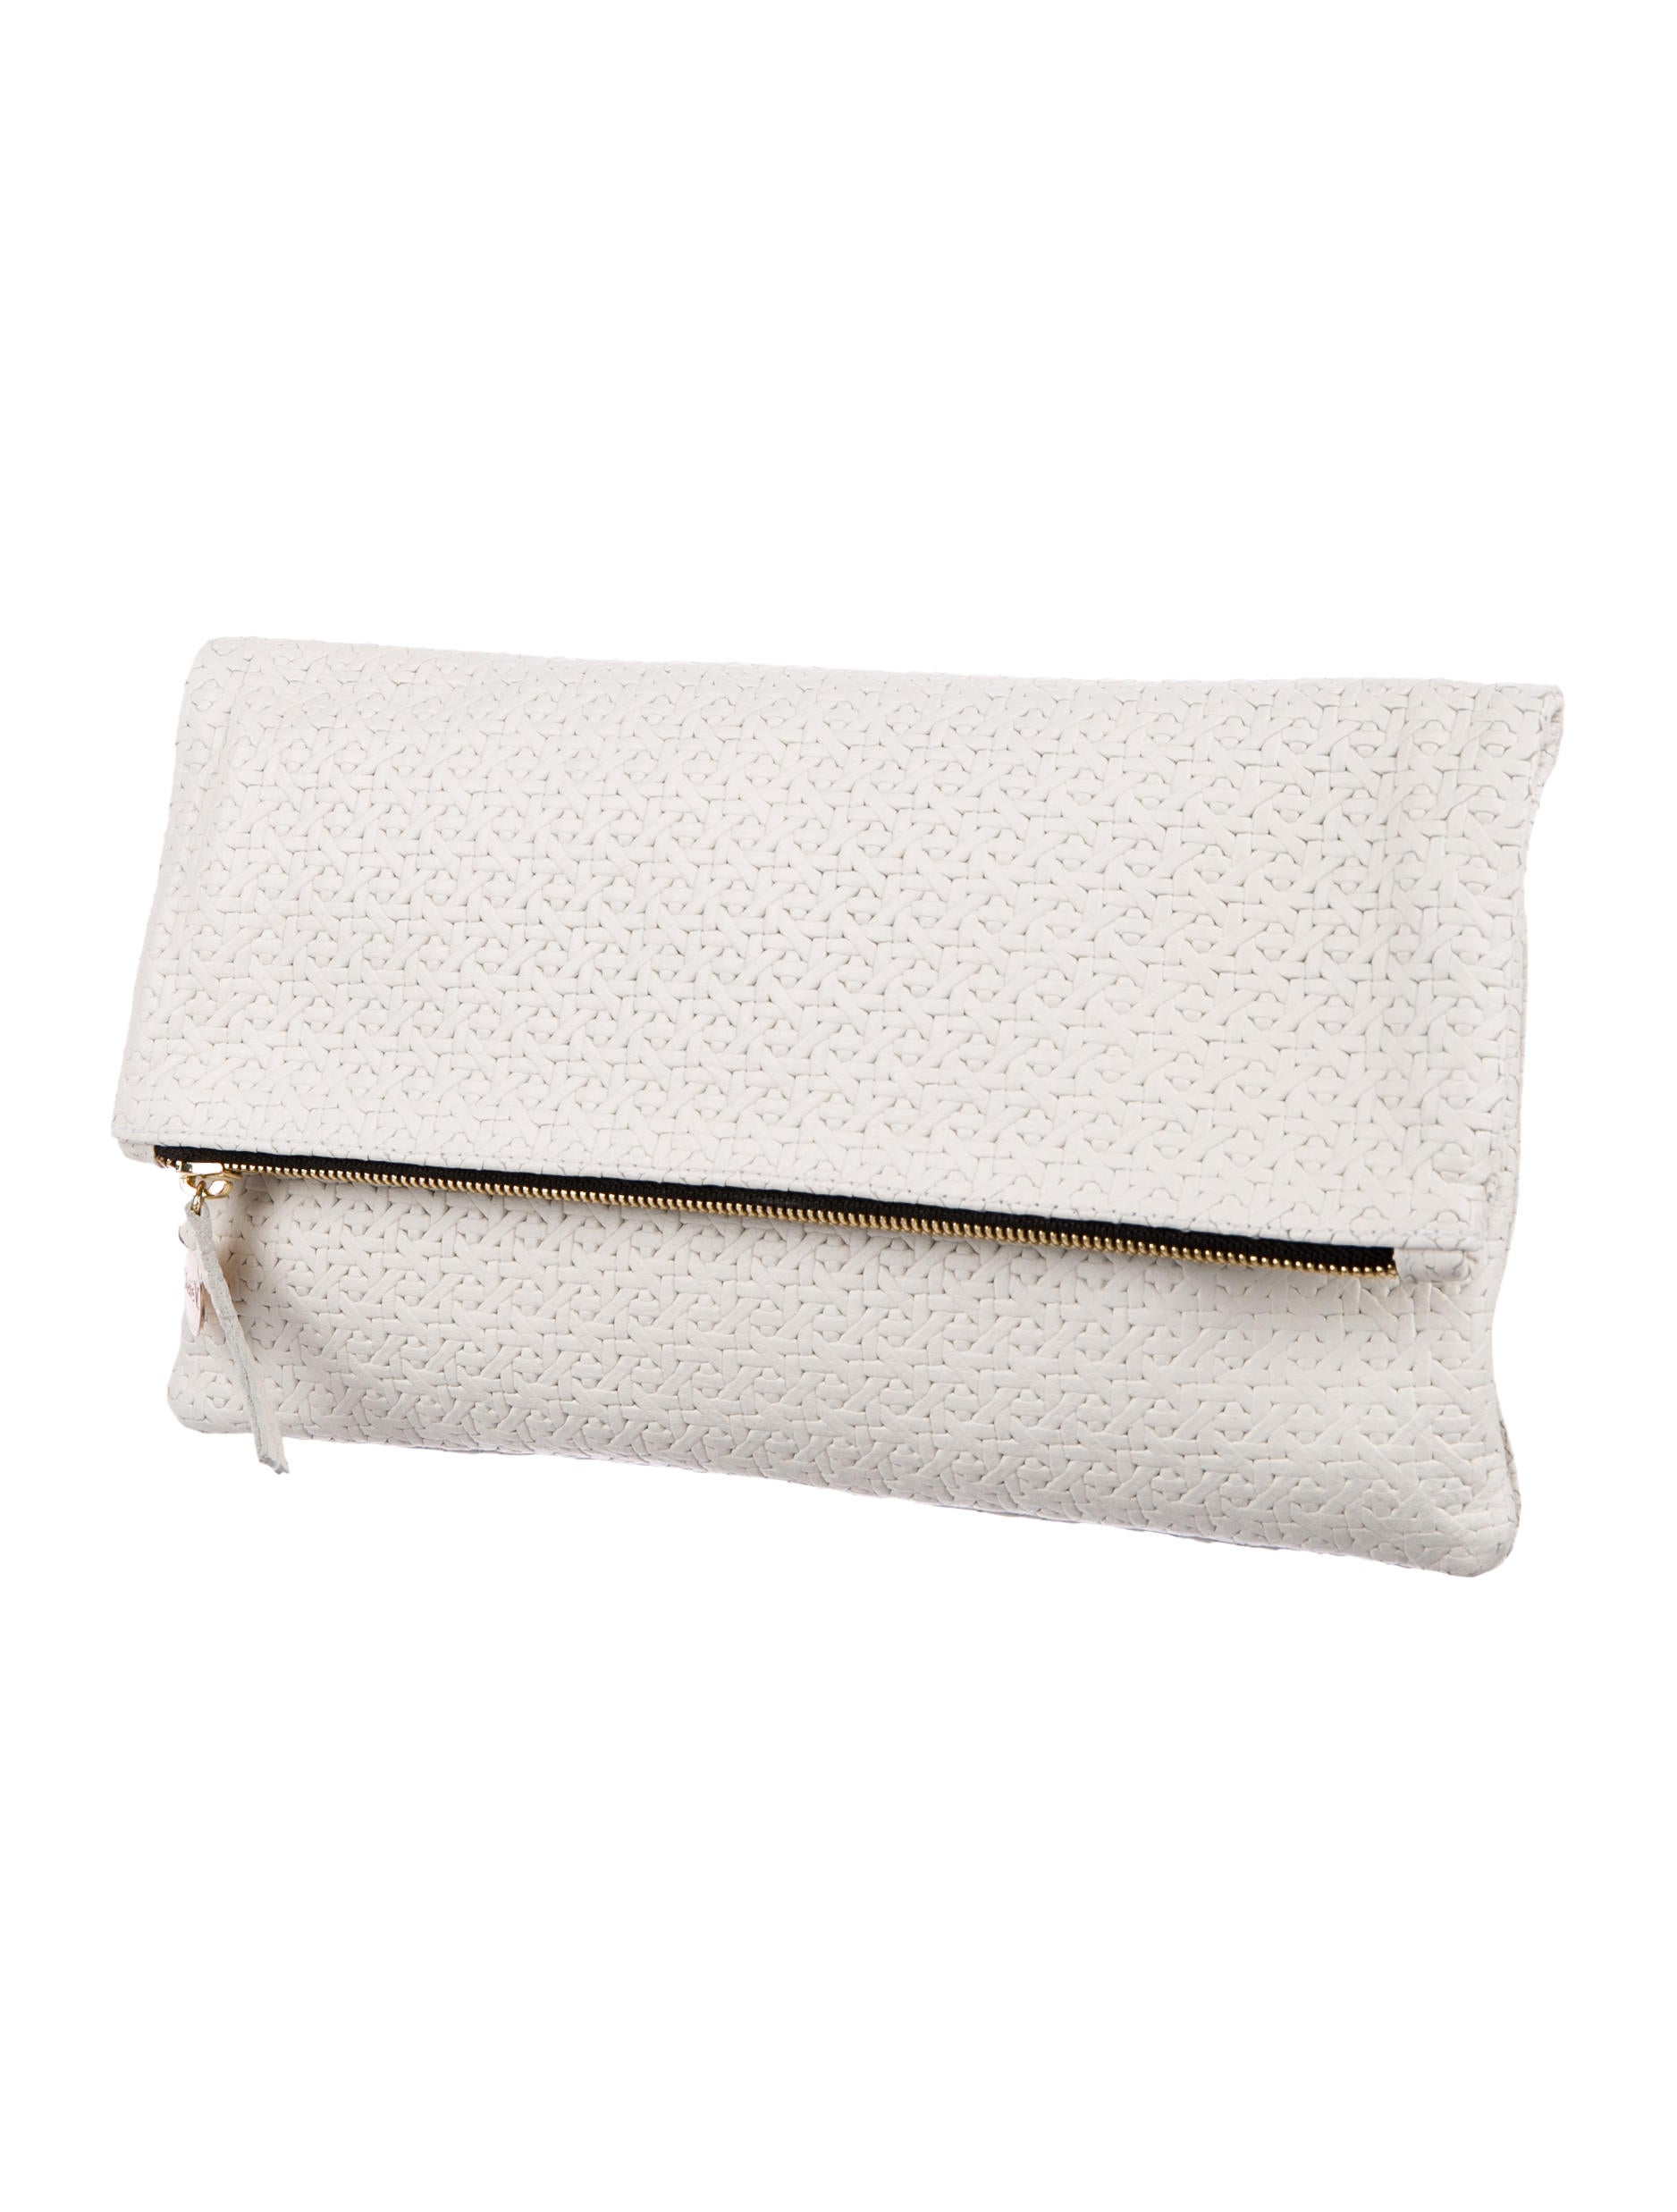 Fold over flap clutch : Clare v fold over leather clutch handbags w